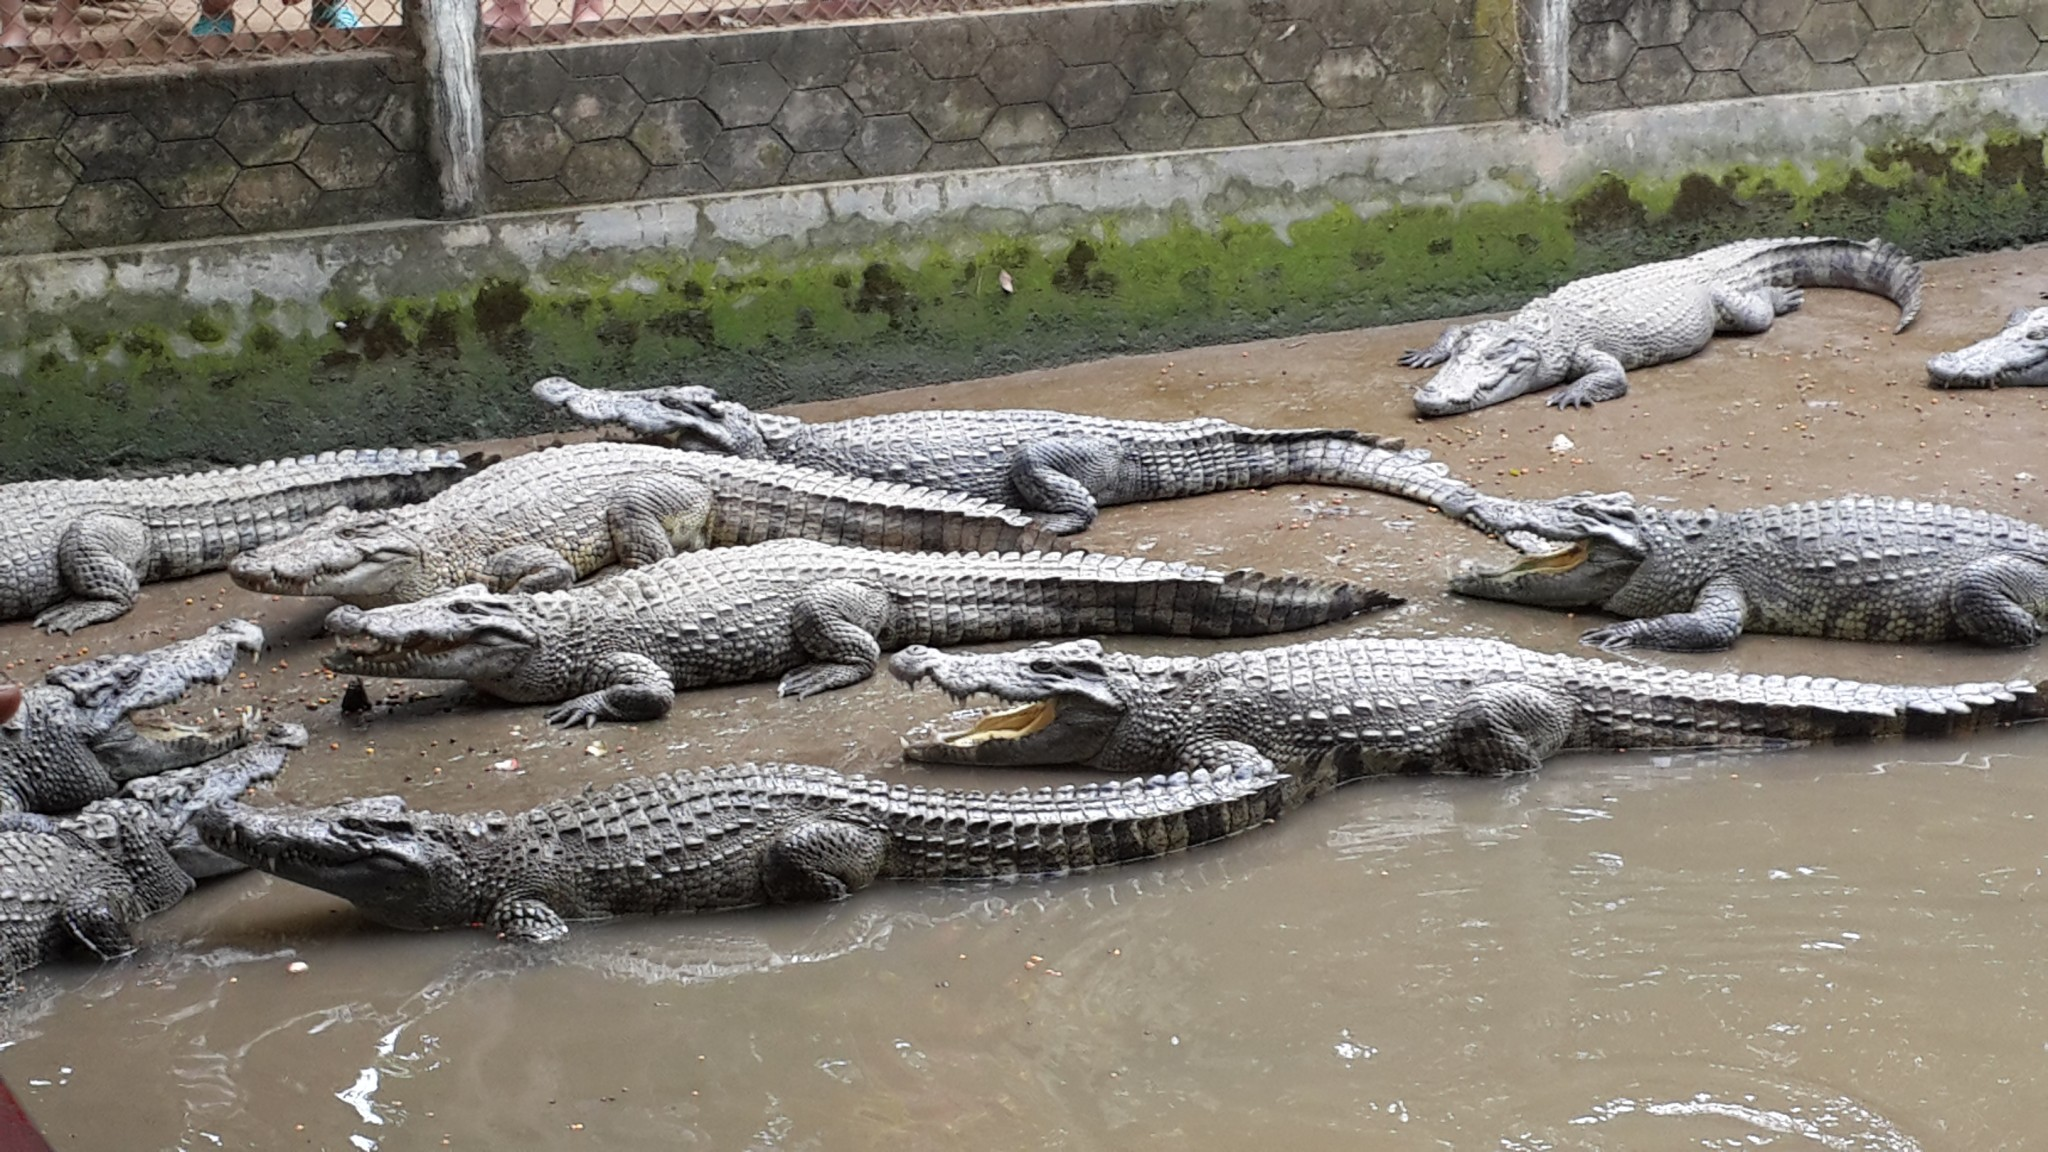 Crocodiles at one of the stops along the Mekong Delta